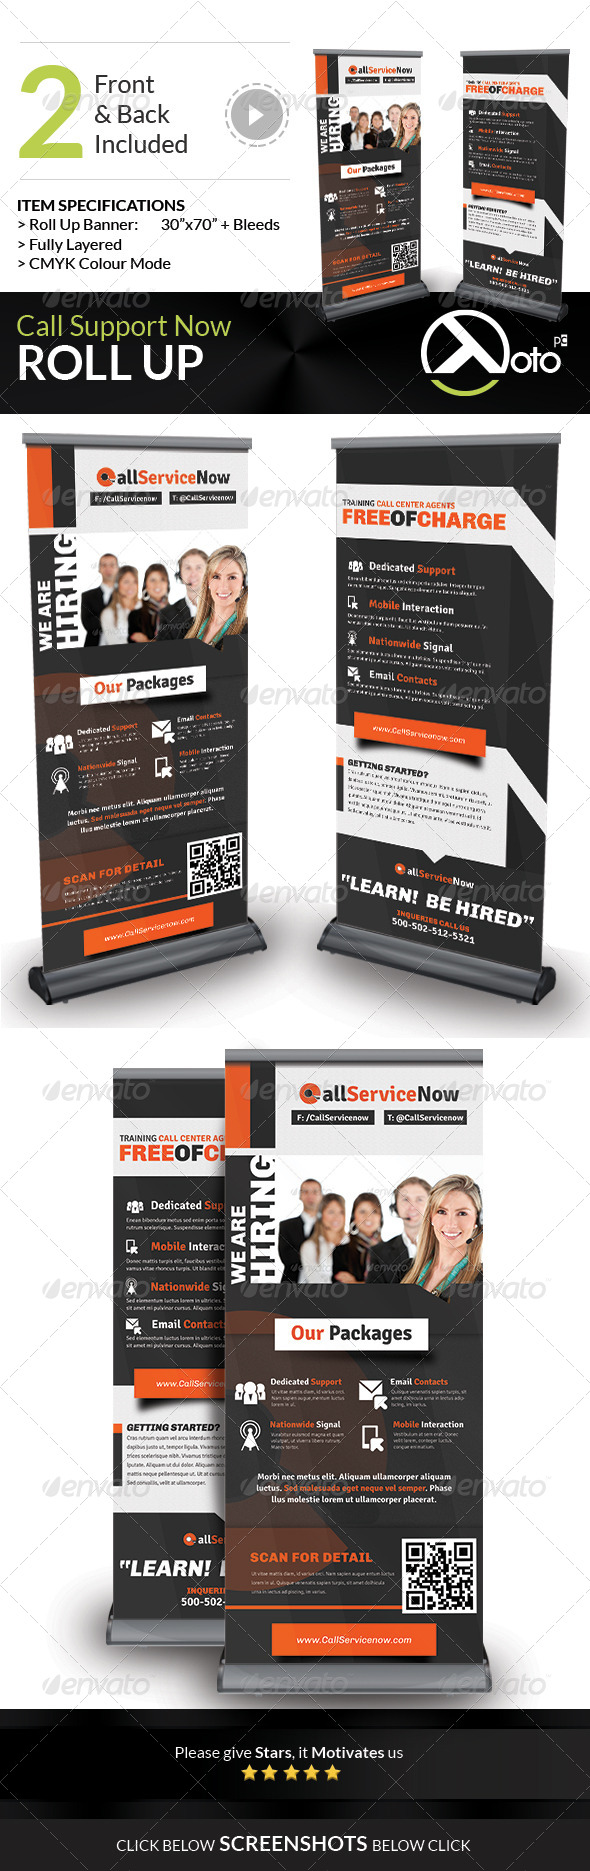 GraphicRiver Call Support Call Center Solutions Roll Up Banners 7920466